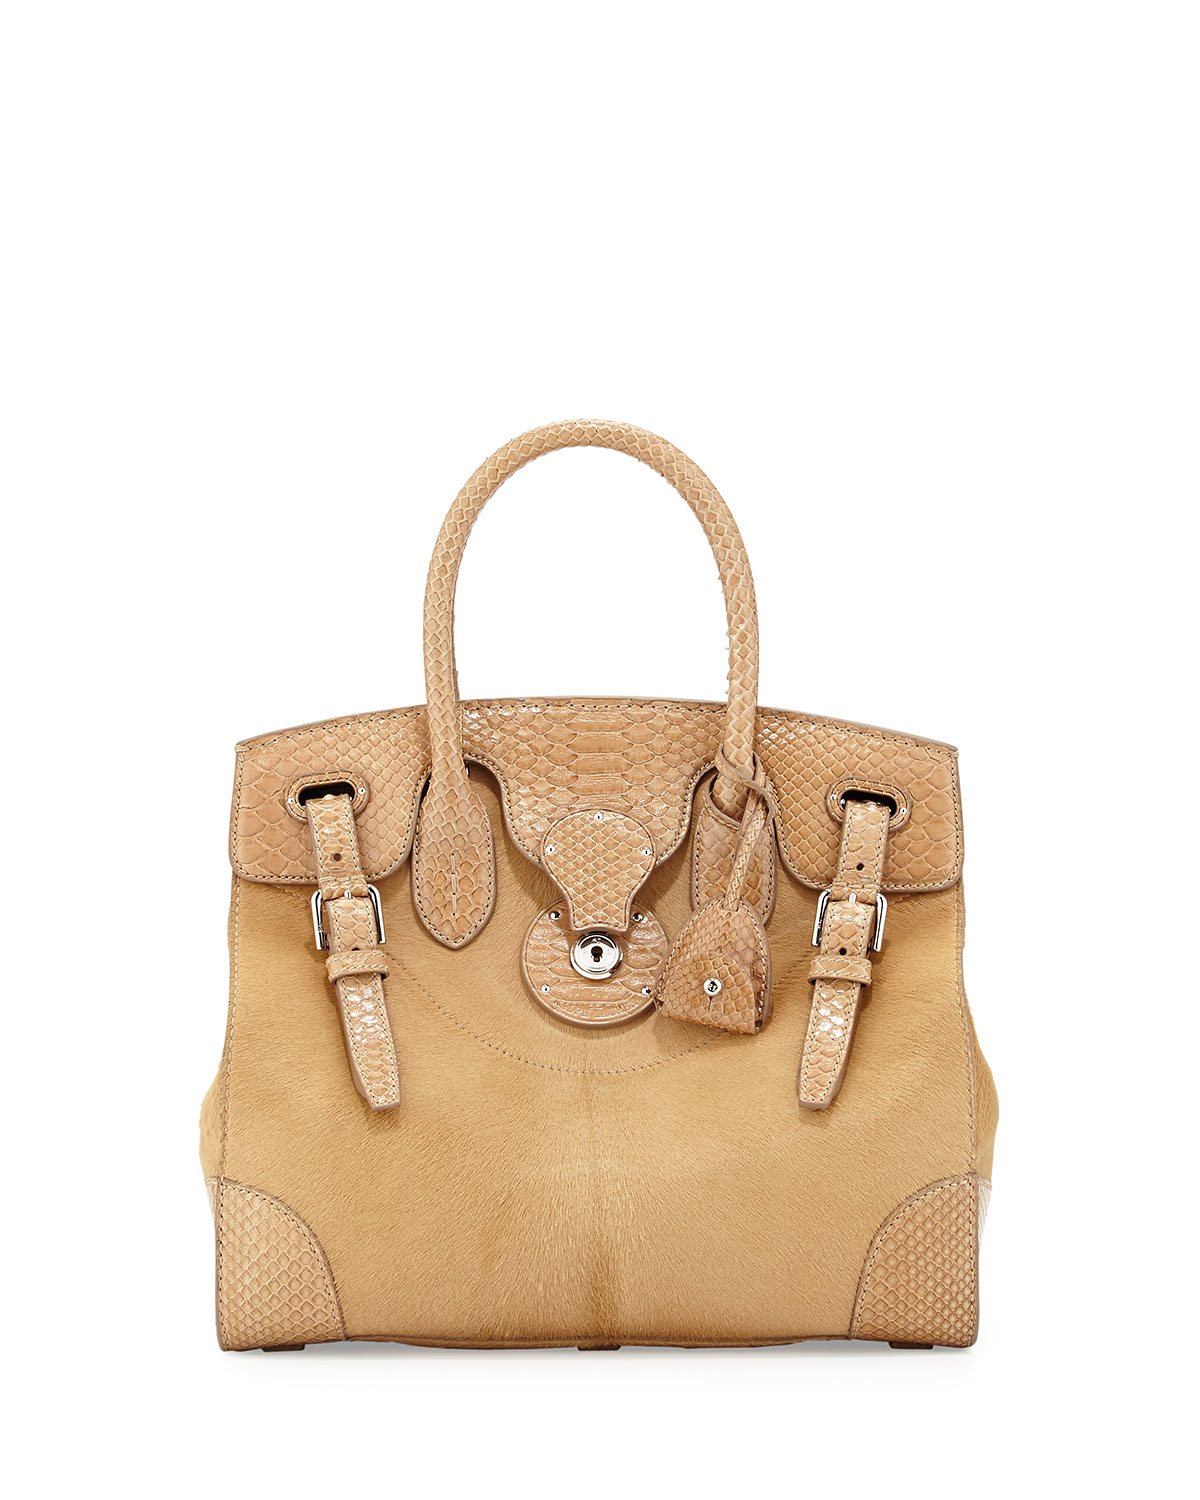 64da4620a6 Lyst - Ralph Lauren Ricky 33 Calf Hair   Python Satchel Bag in Natural